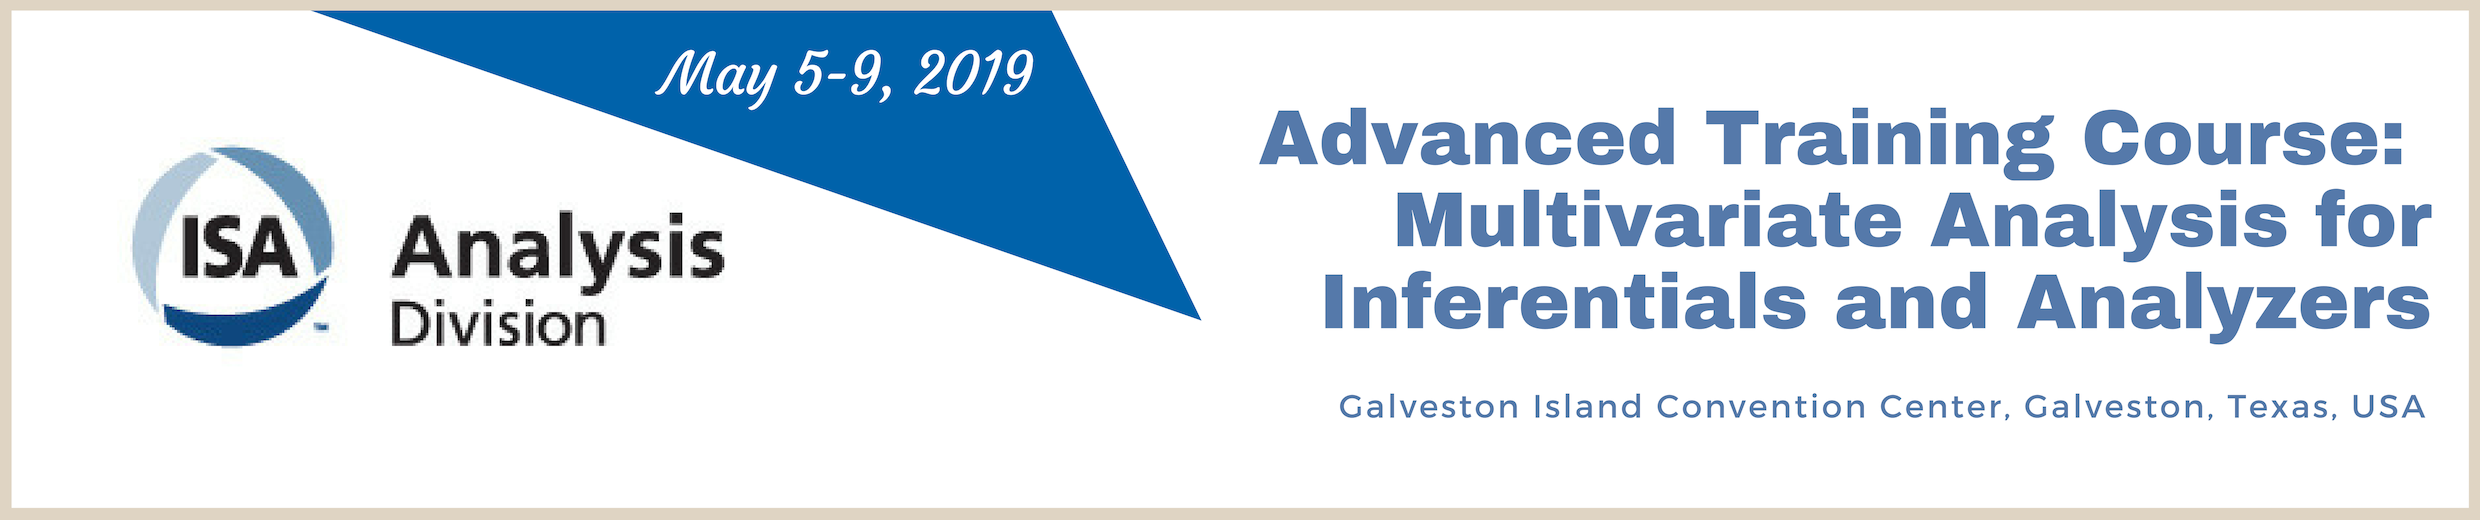 ISA-AD 2019 - ISA Shortcourse - Multivariate Analysis for Inferentials and Analyzers (May 5)